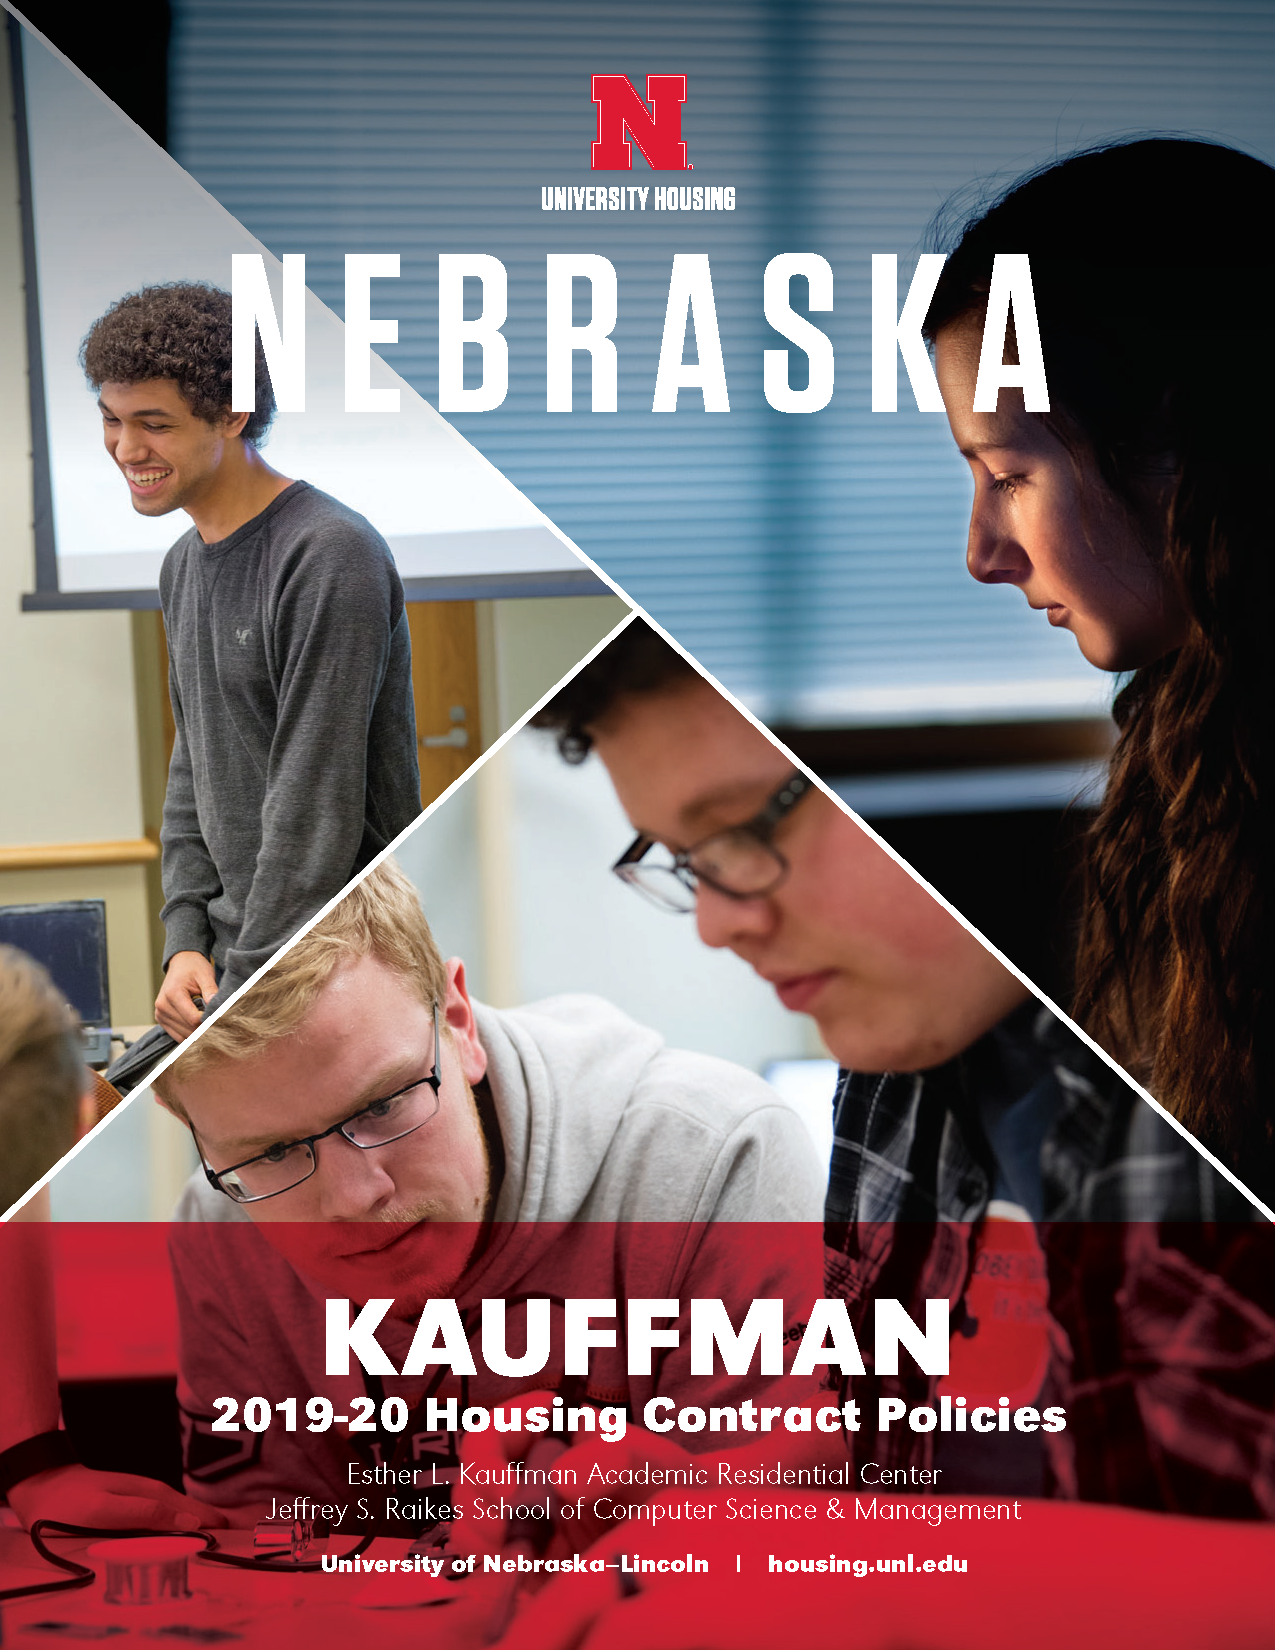 Kauffman policies booklet cover image